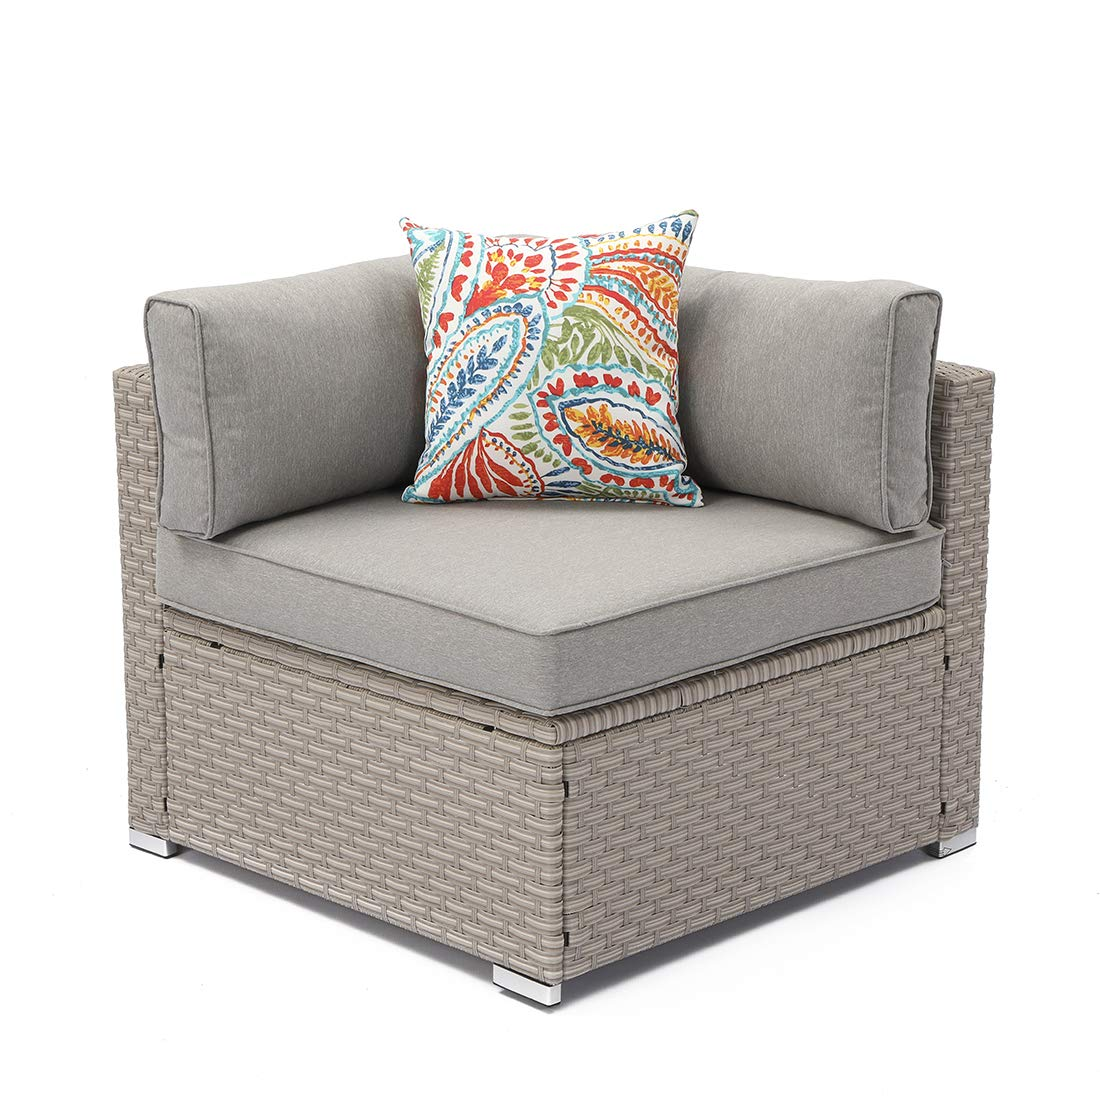 COSIEST Outdoor Furniture Add-on Left Corner Chair for Expanding Wicker Sectional Sofa Set w Warm Gray Thick Cushions, 1 Floral Fantasy Pillow for Garden, Pool, Backyard